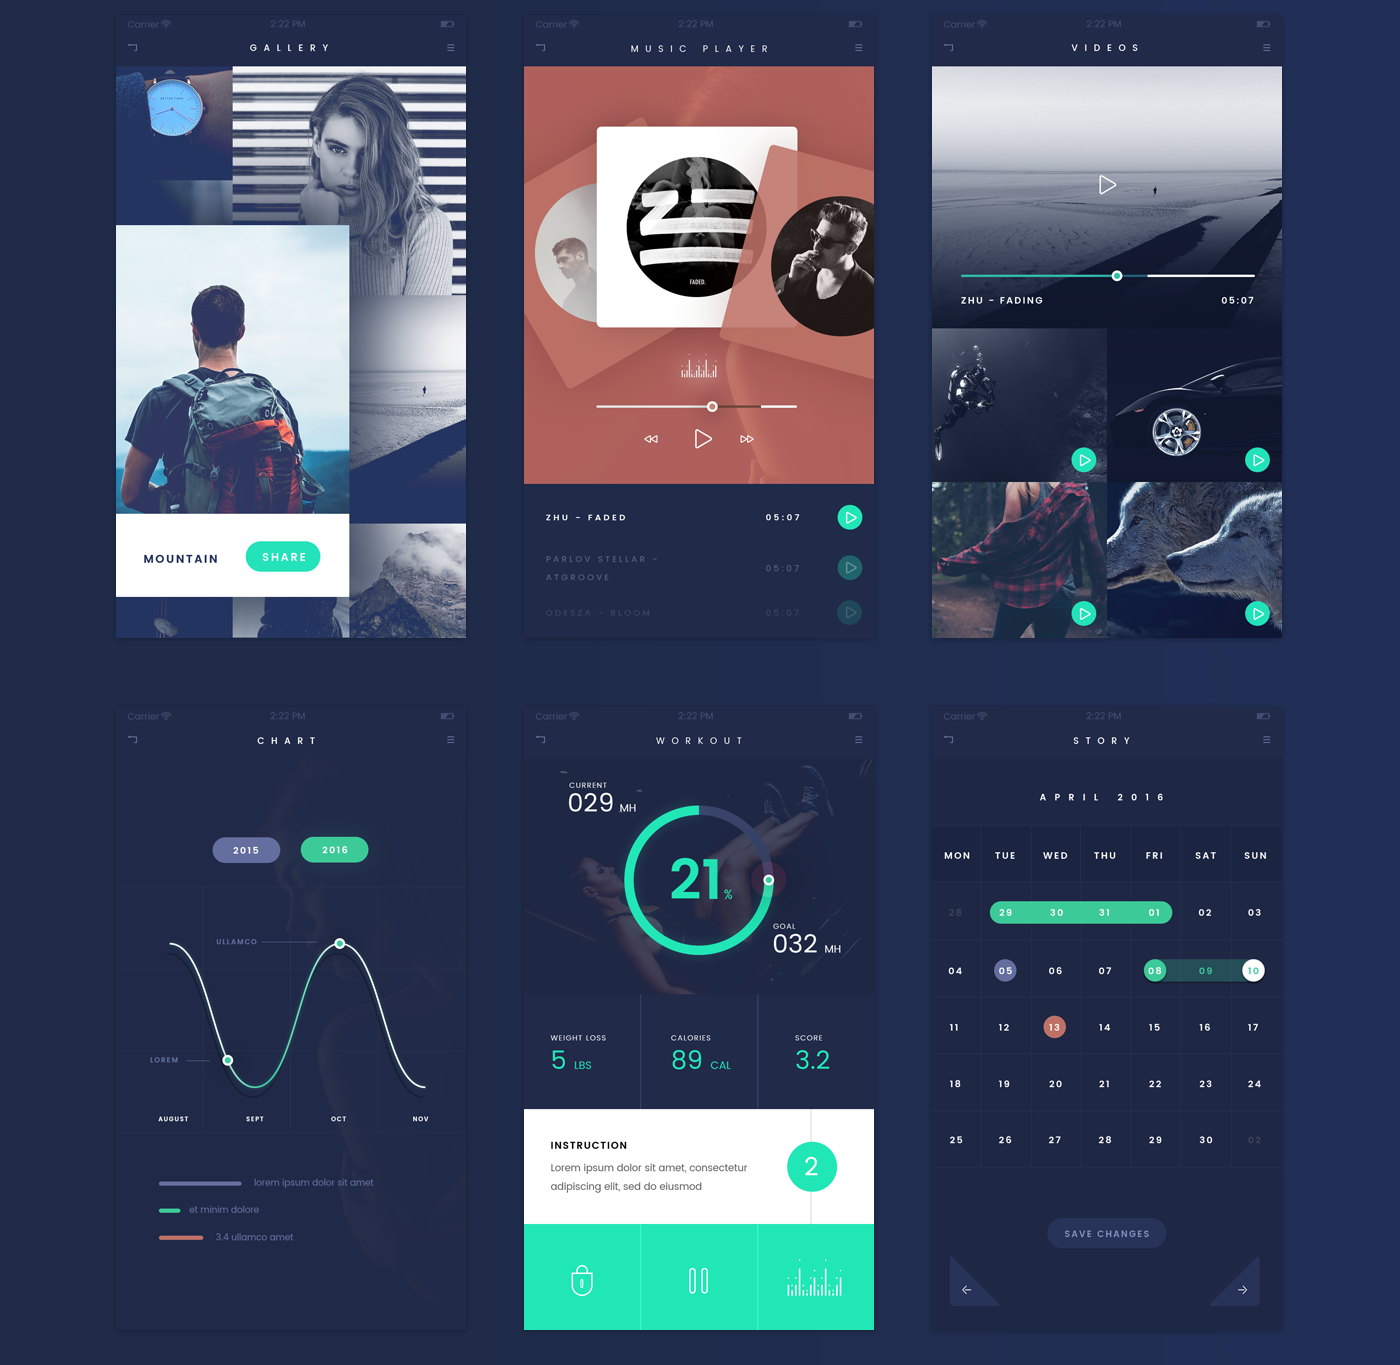 Free-FADE-APP-UI-Kit-Psd-File-2 Template App Android Psd on modern warfare profile, folder icon, mobile dimensions web design, artist one sheet, free infographic, book cover mockup, one page website, responsive website, email signature, website design,